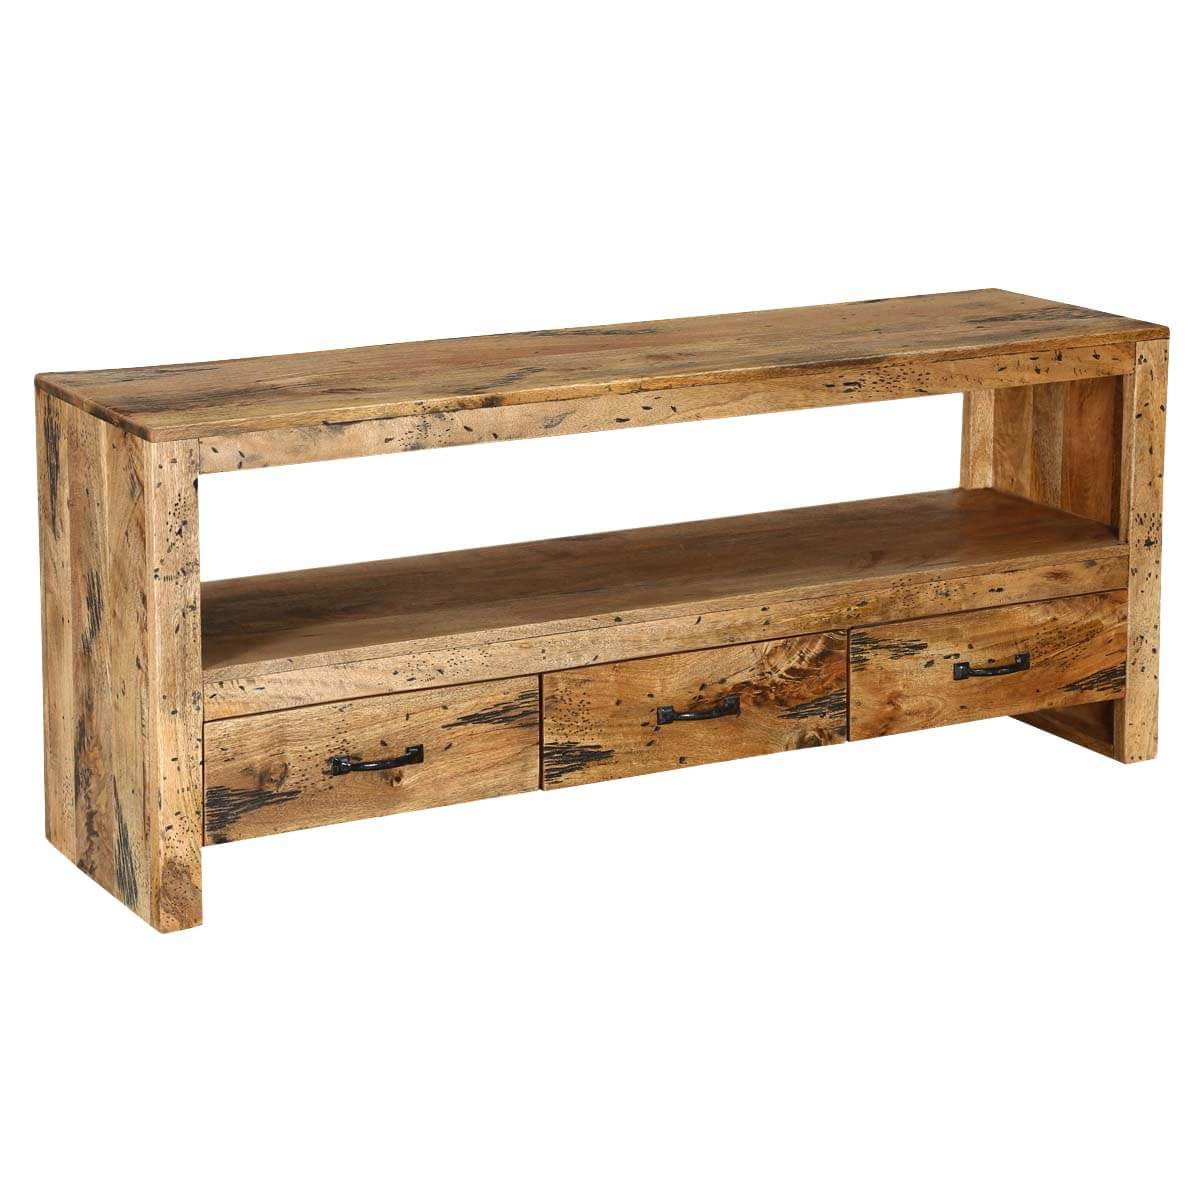 "Mango Tv Stands Throughout Famous Virginia Smart Handcrafted Mango Wood 57"" Wide Rustic Tv Stand (Gallery 6 of 20)"